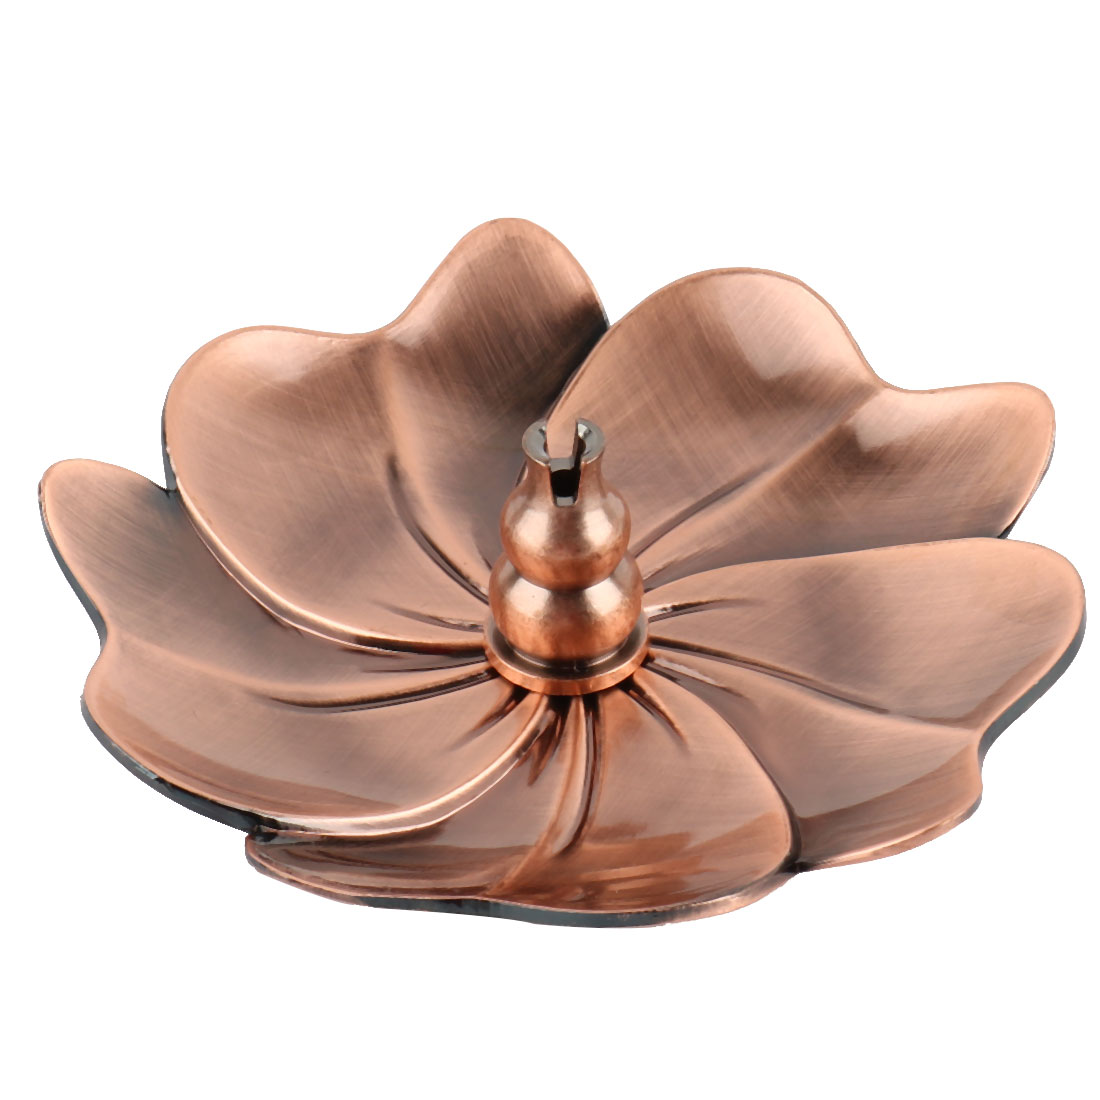 Home Metal Flower Shape Censer Plate Insence Stick Holder Container Copper Tone